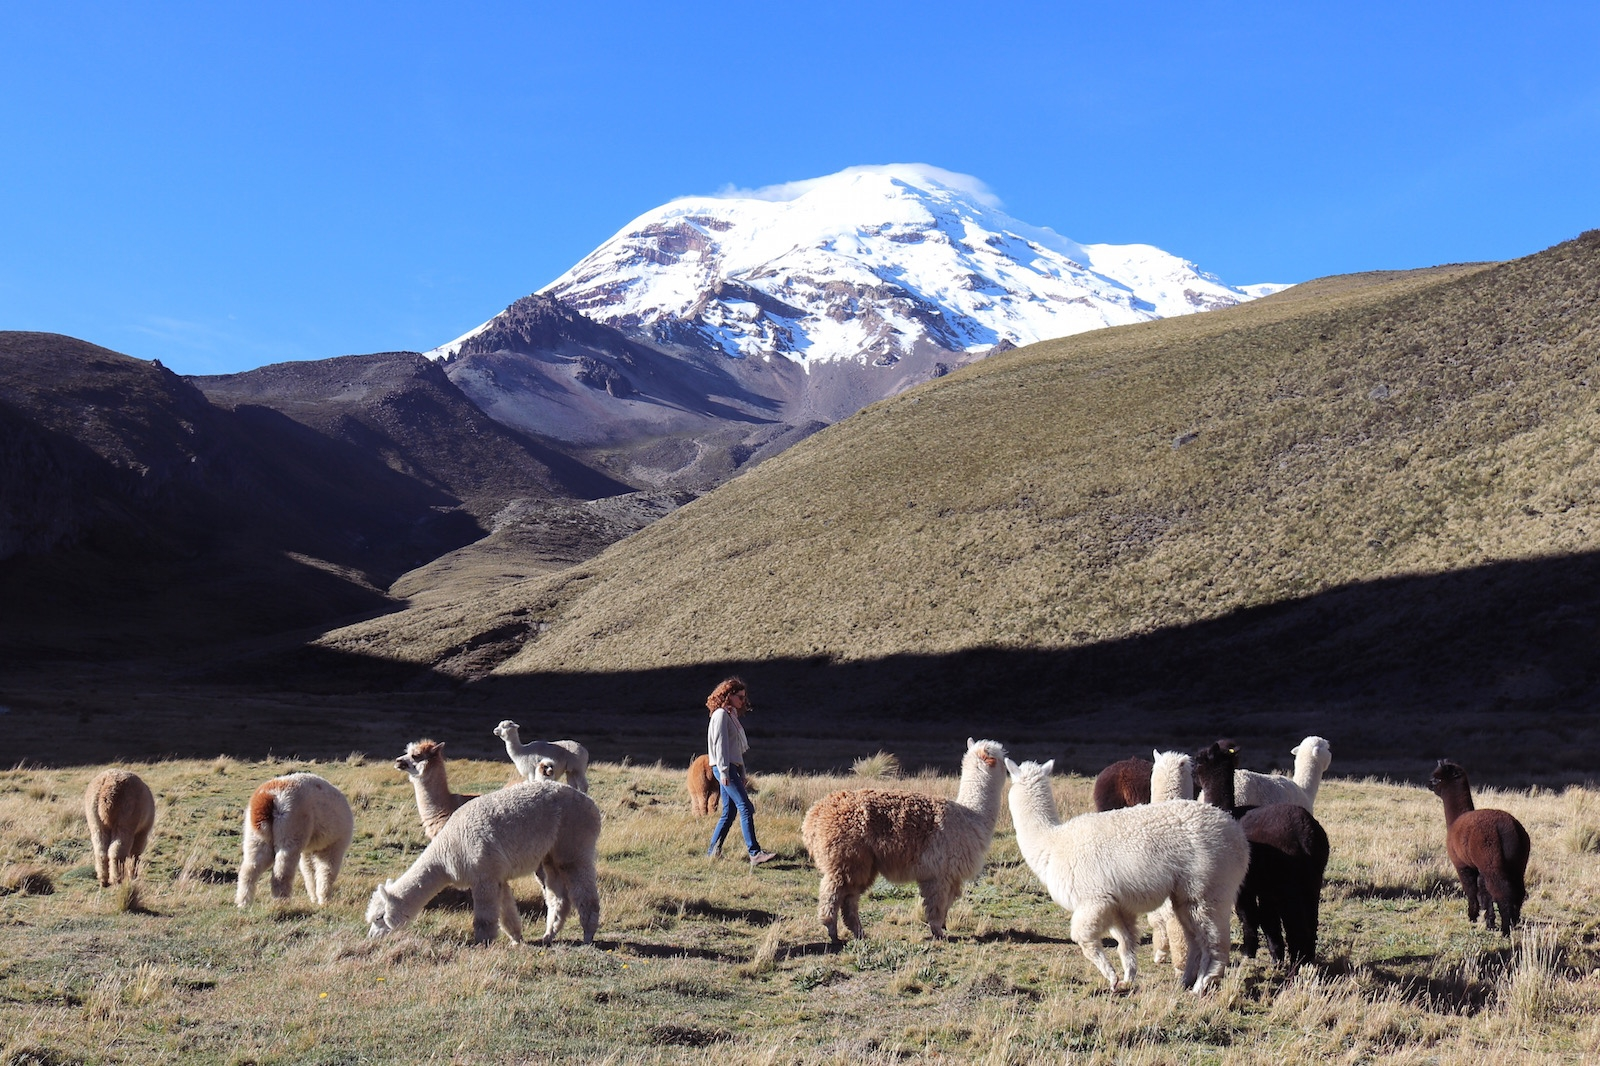 Travel Wiser Ecuador highlands road trip itinerary